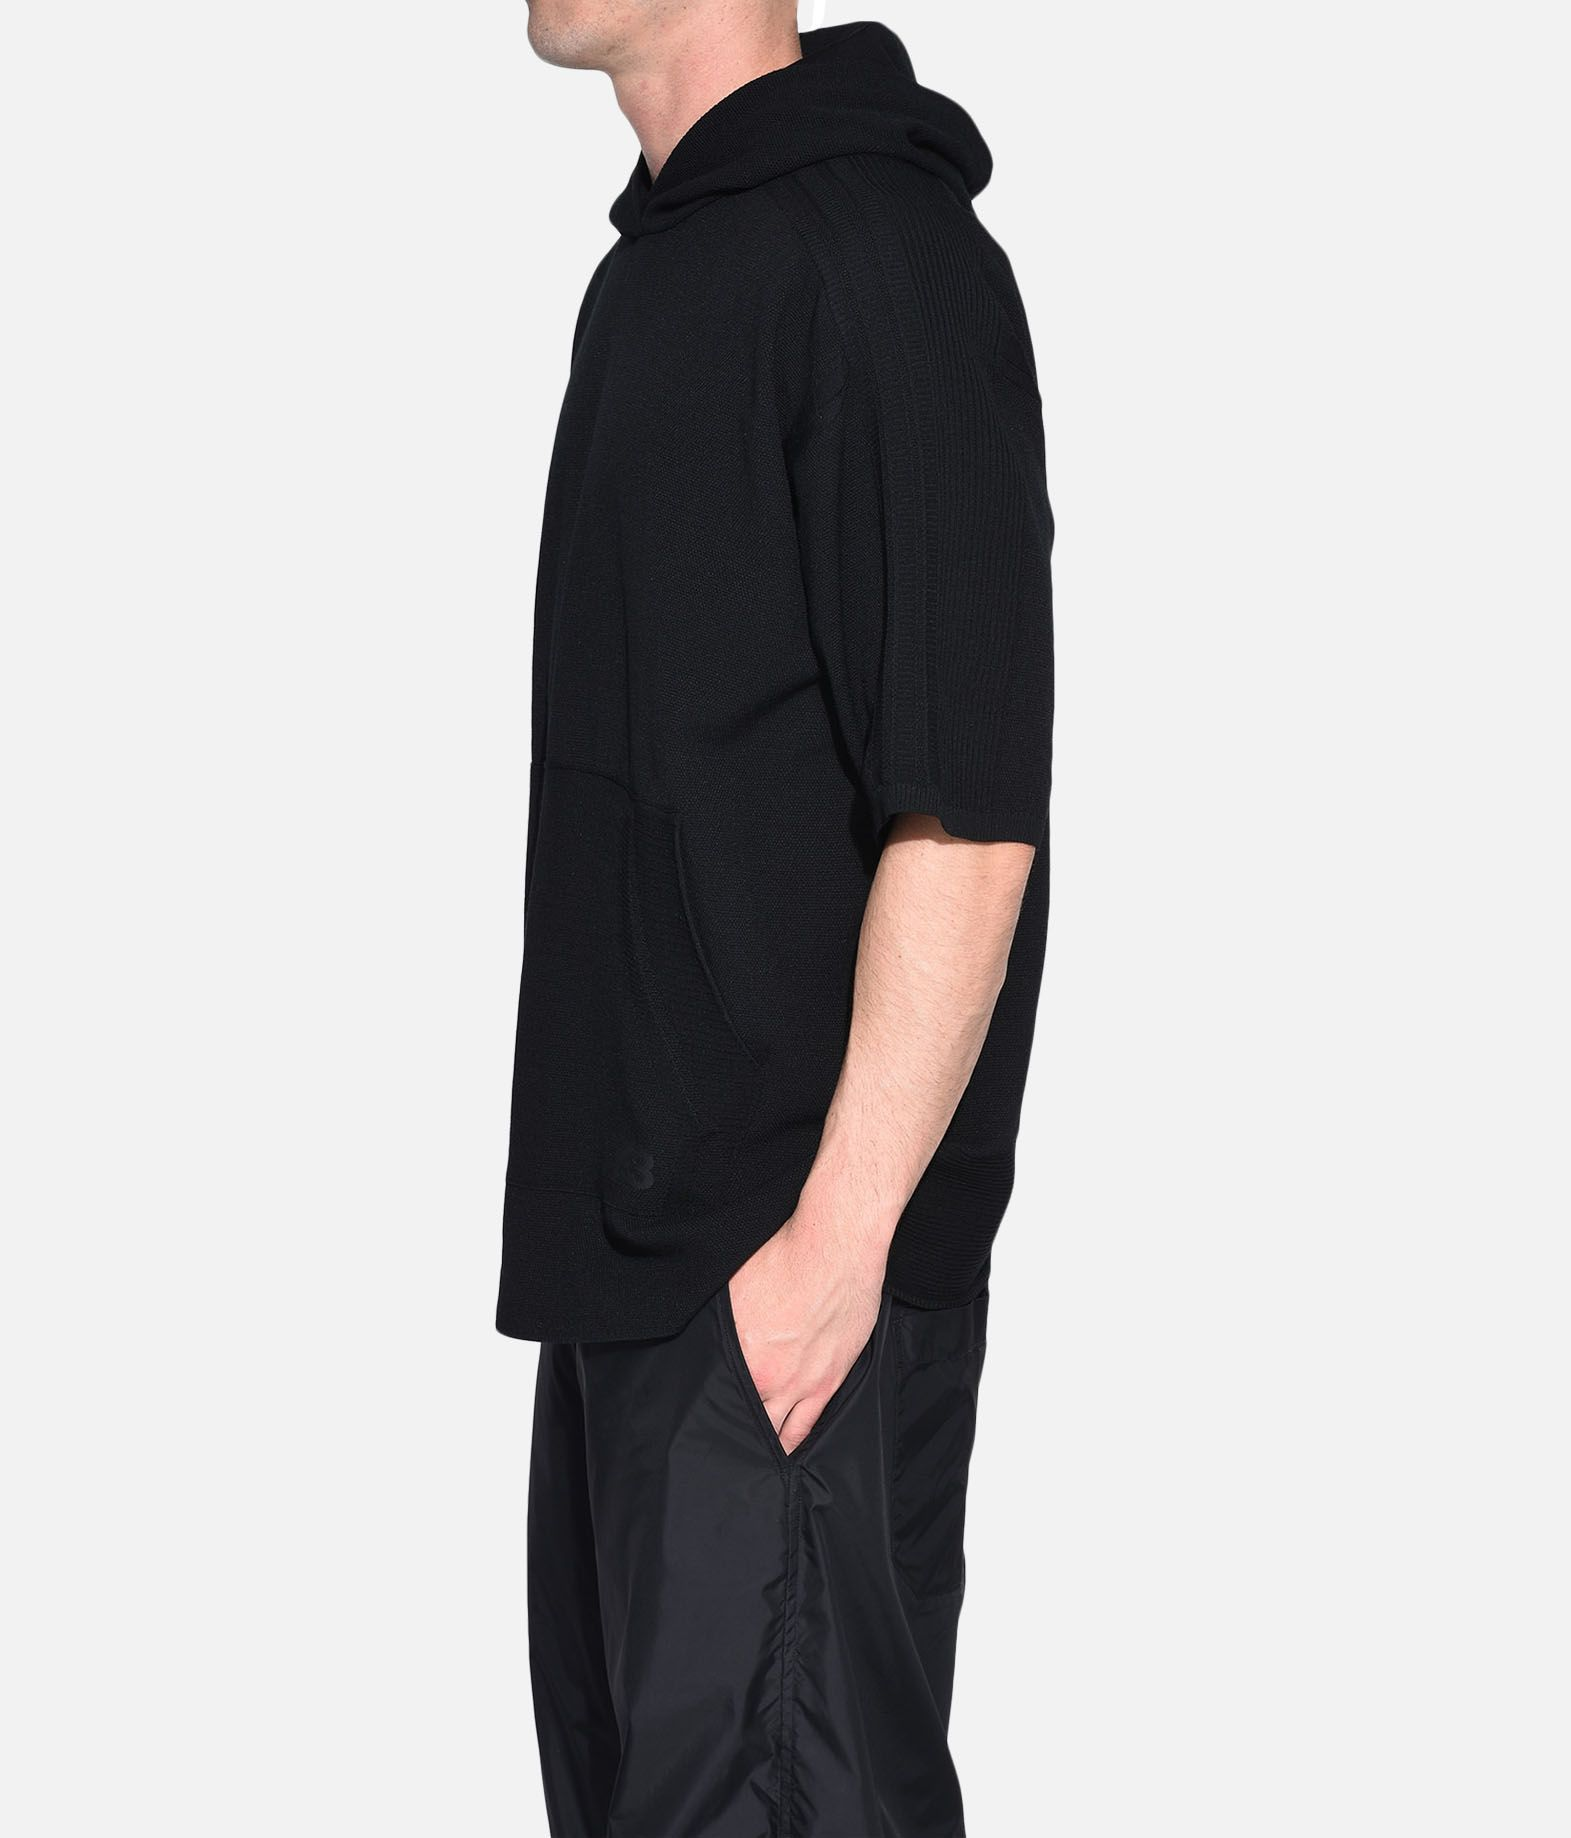 Y-3 Y-3 Tech Wool Hoodie Short sleeve sweater Man e